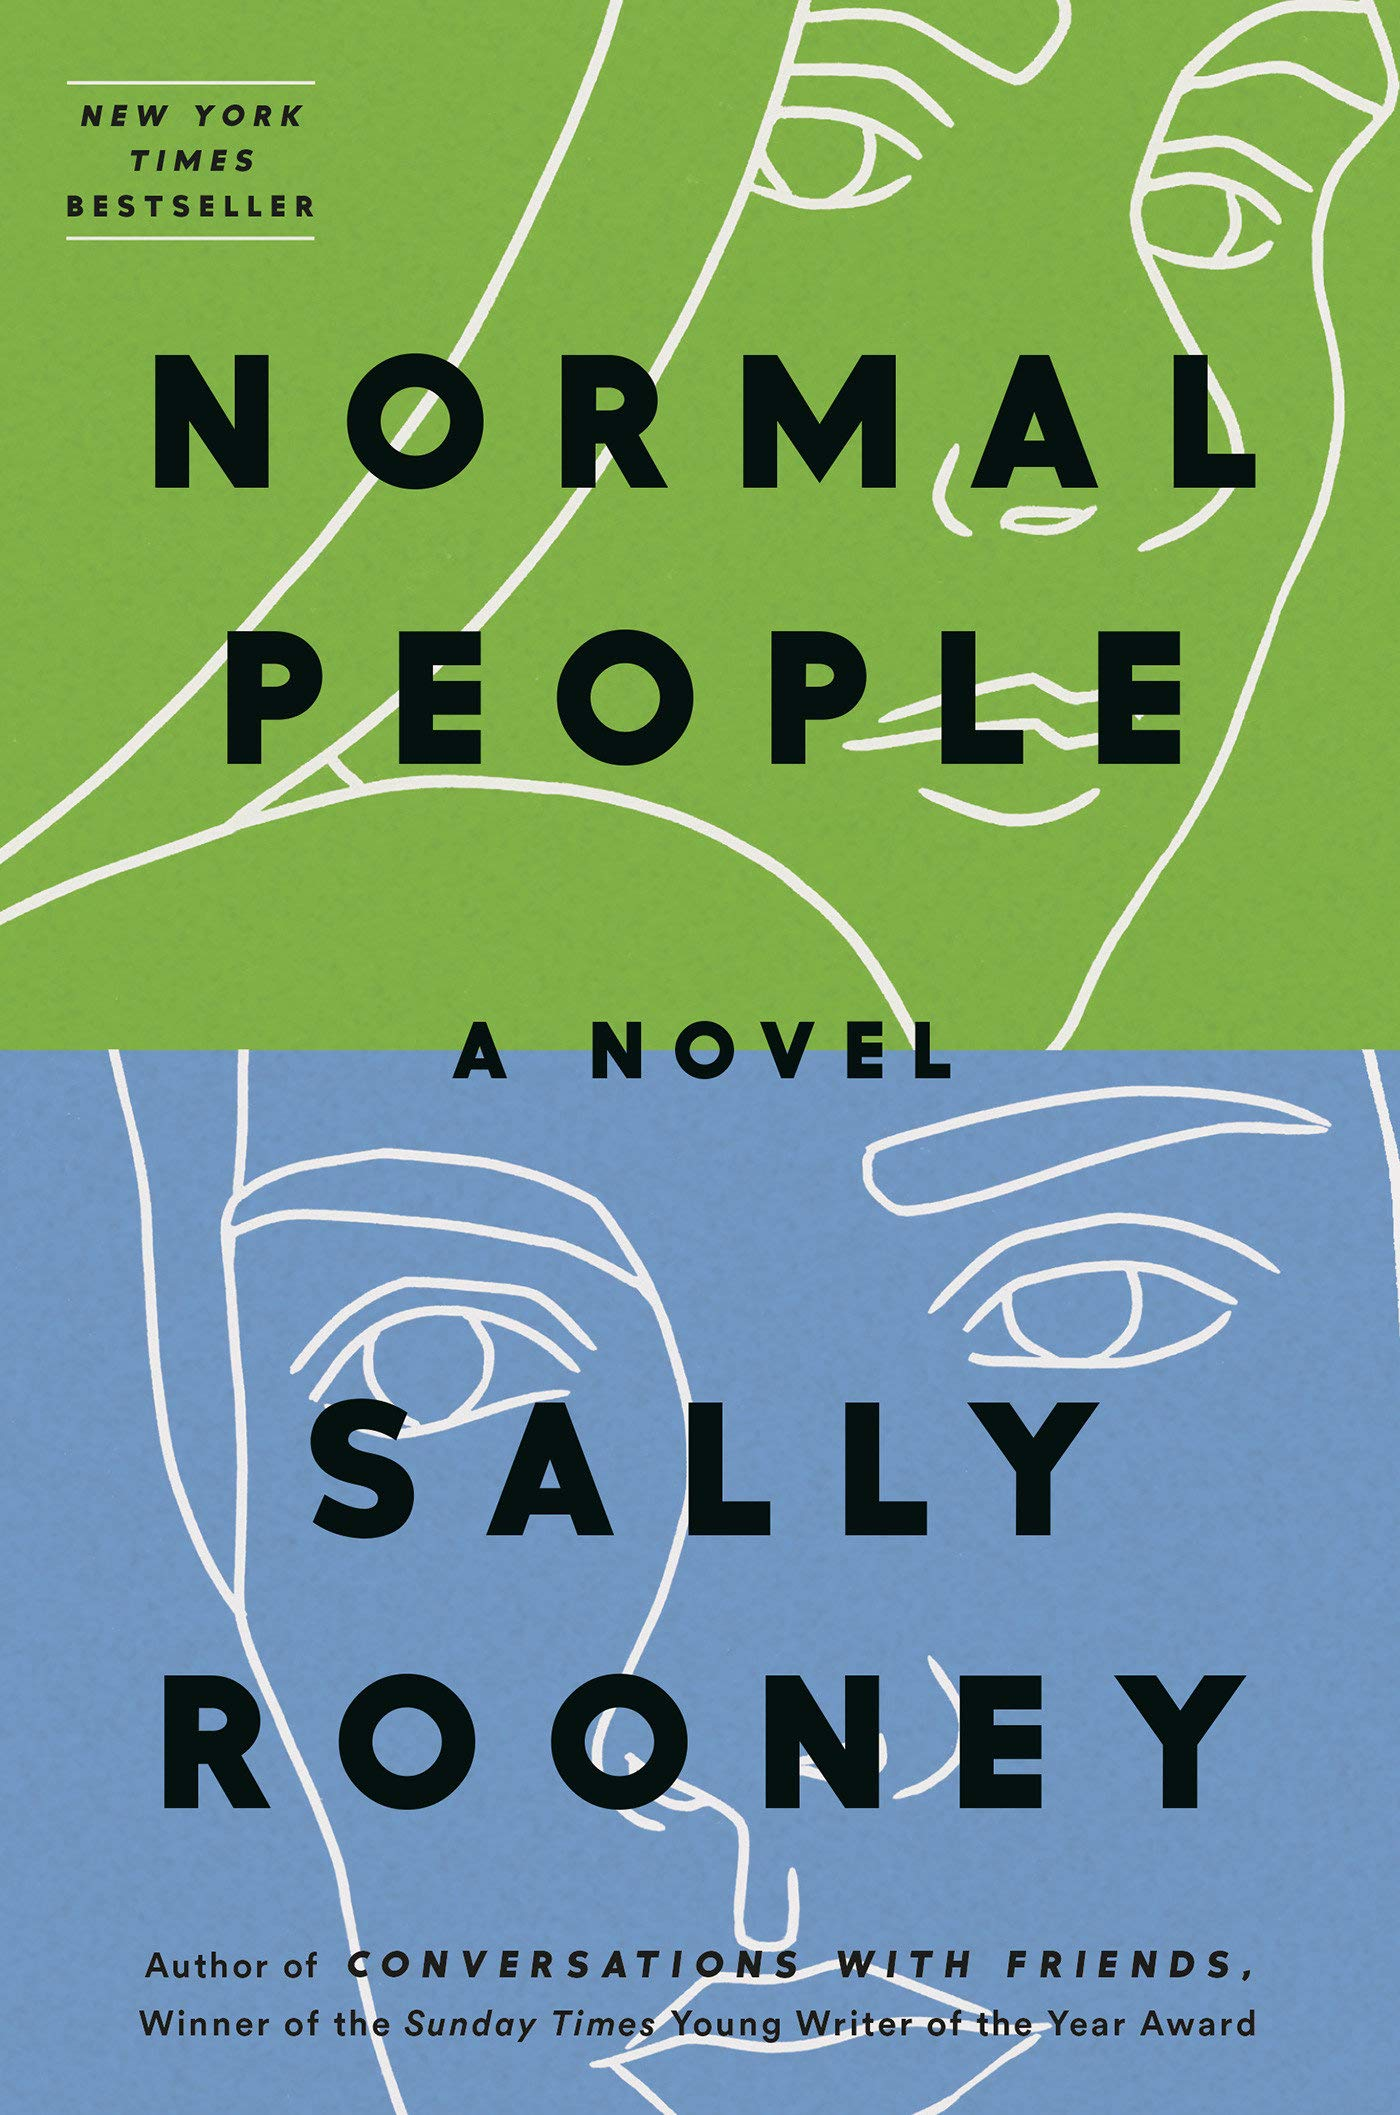 Normal People: A Novel: Rooney, Sally: 9781984822178: Amazon.com: Books